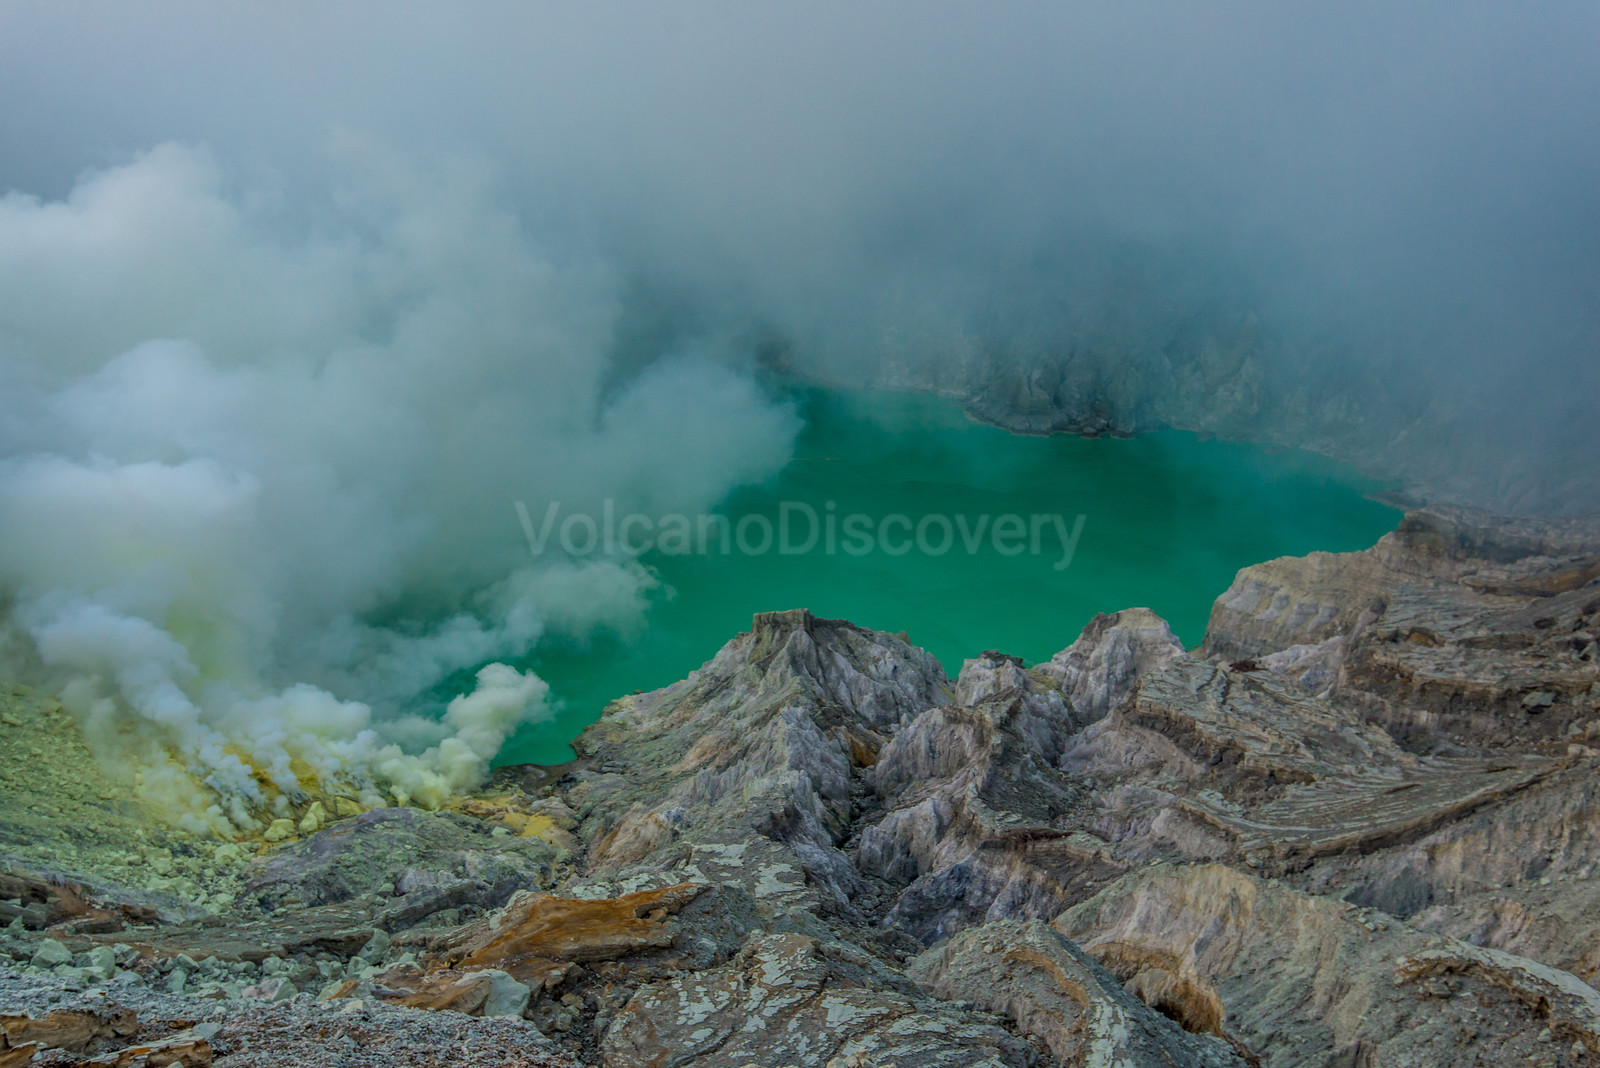 The most acide crater lake in the world